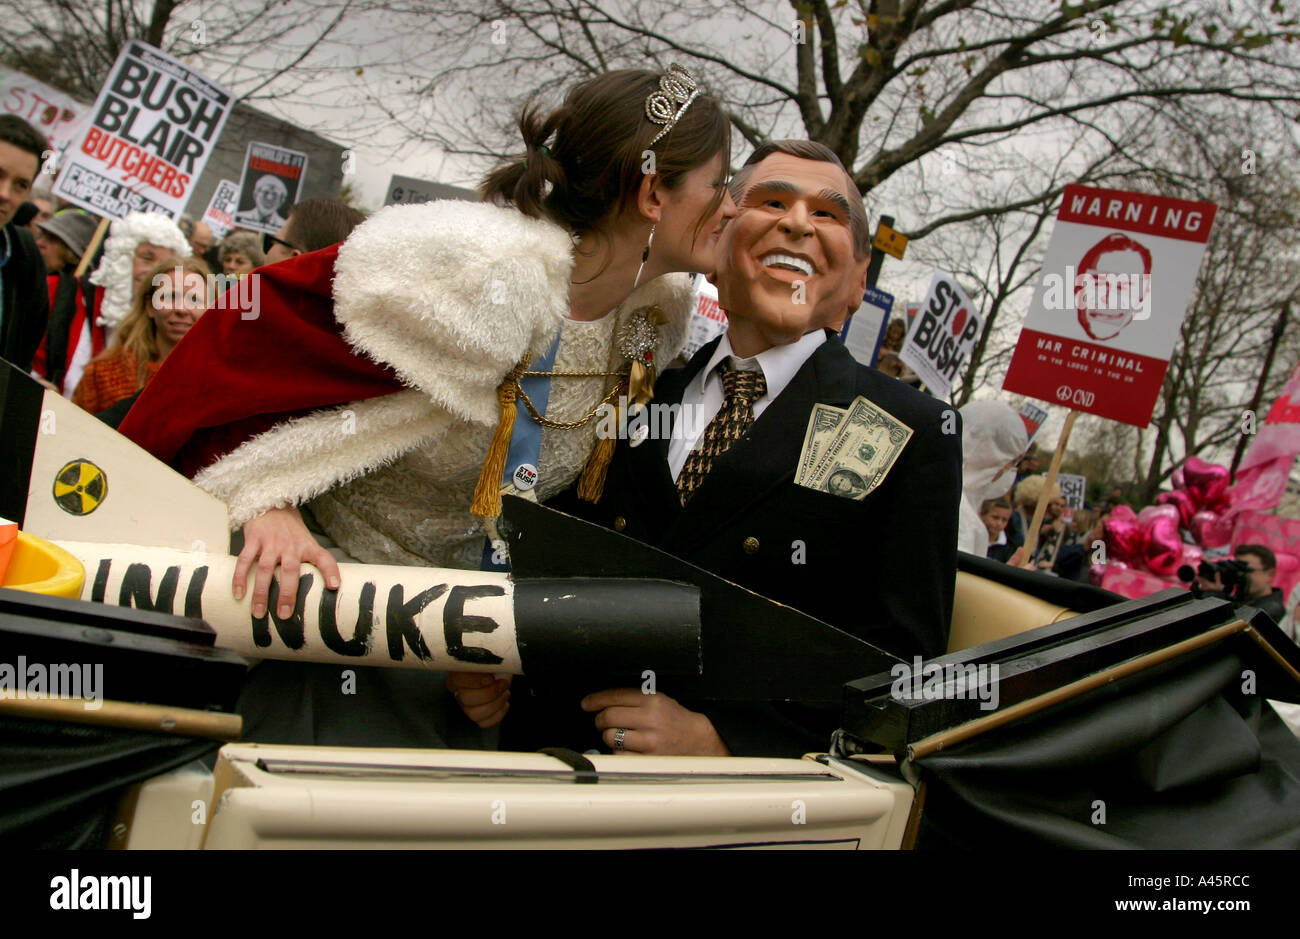 a demonstrator dressed as queen elizabeth kisses a demonstrator dressed as u s president george w bush as they travel Stock Photo